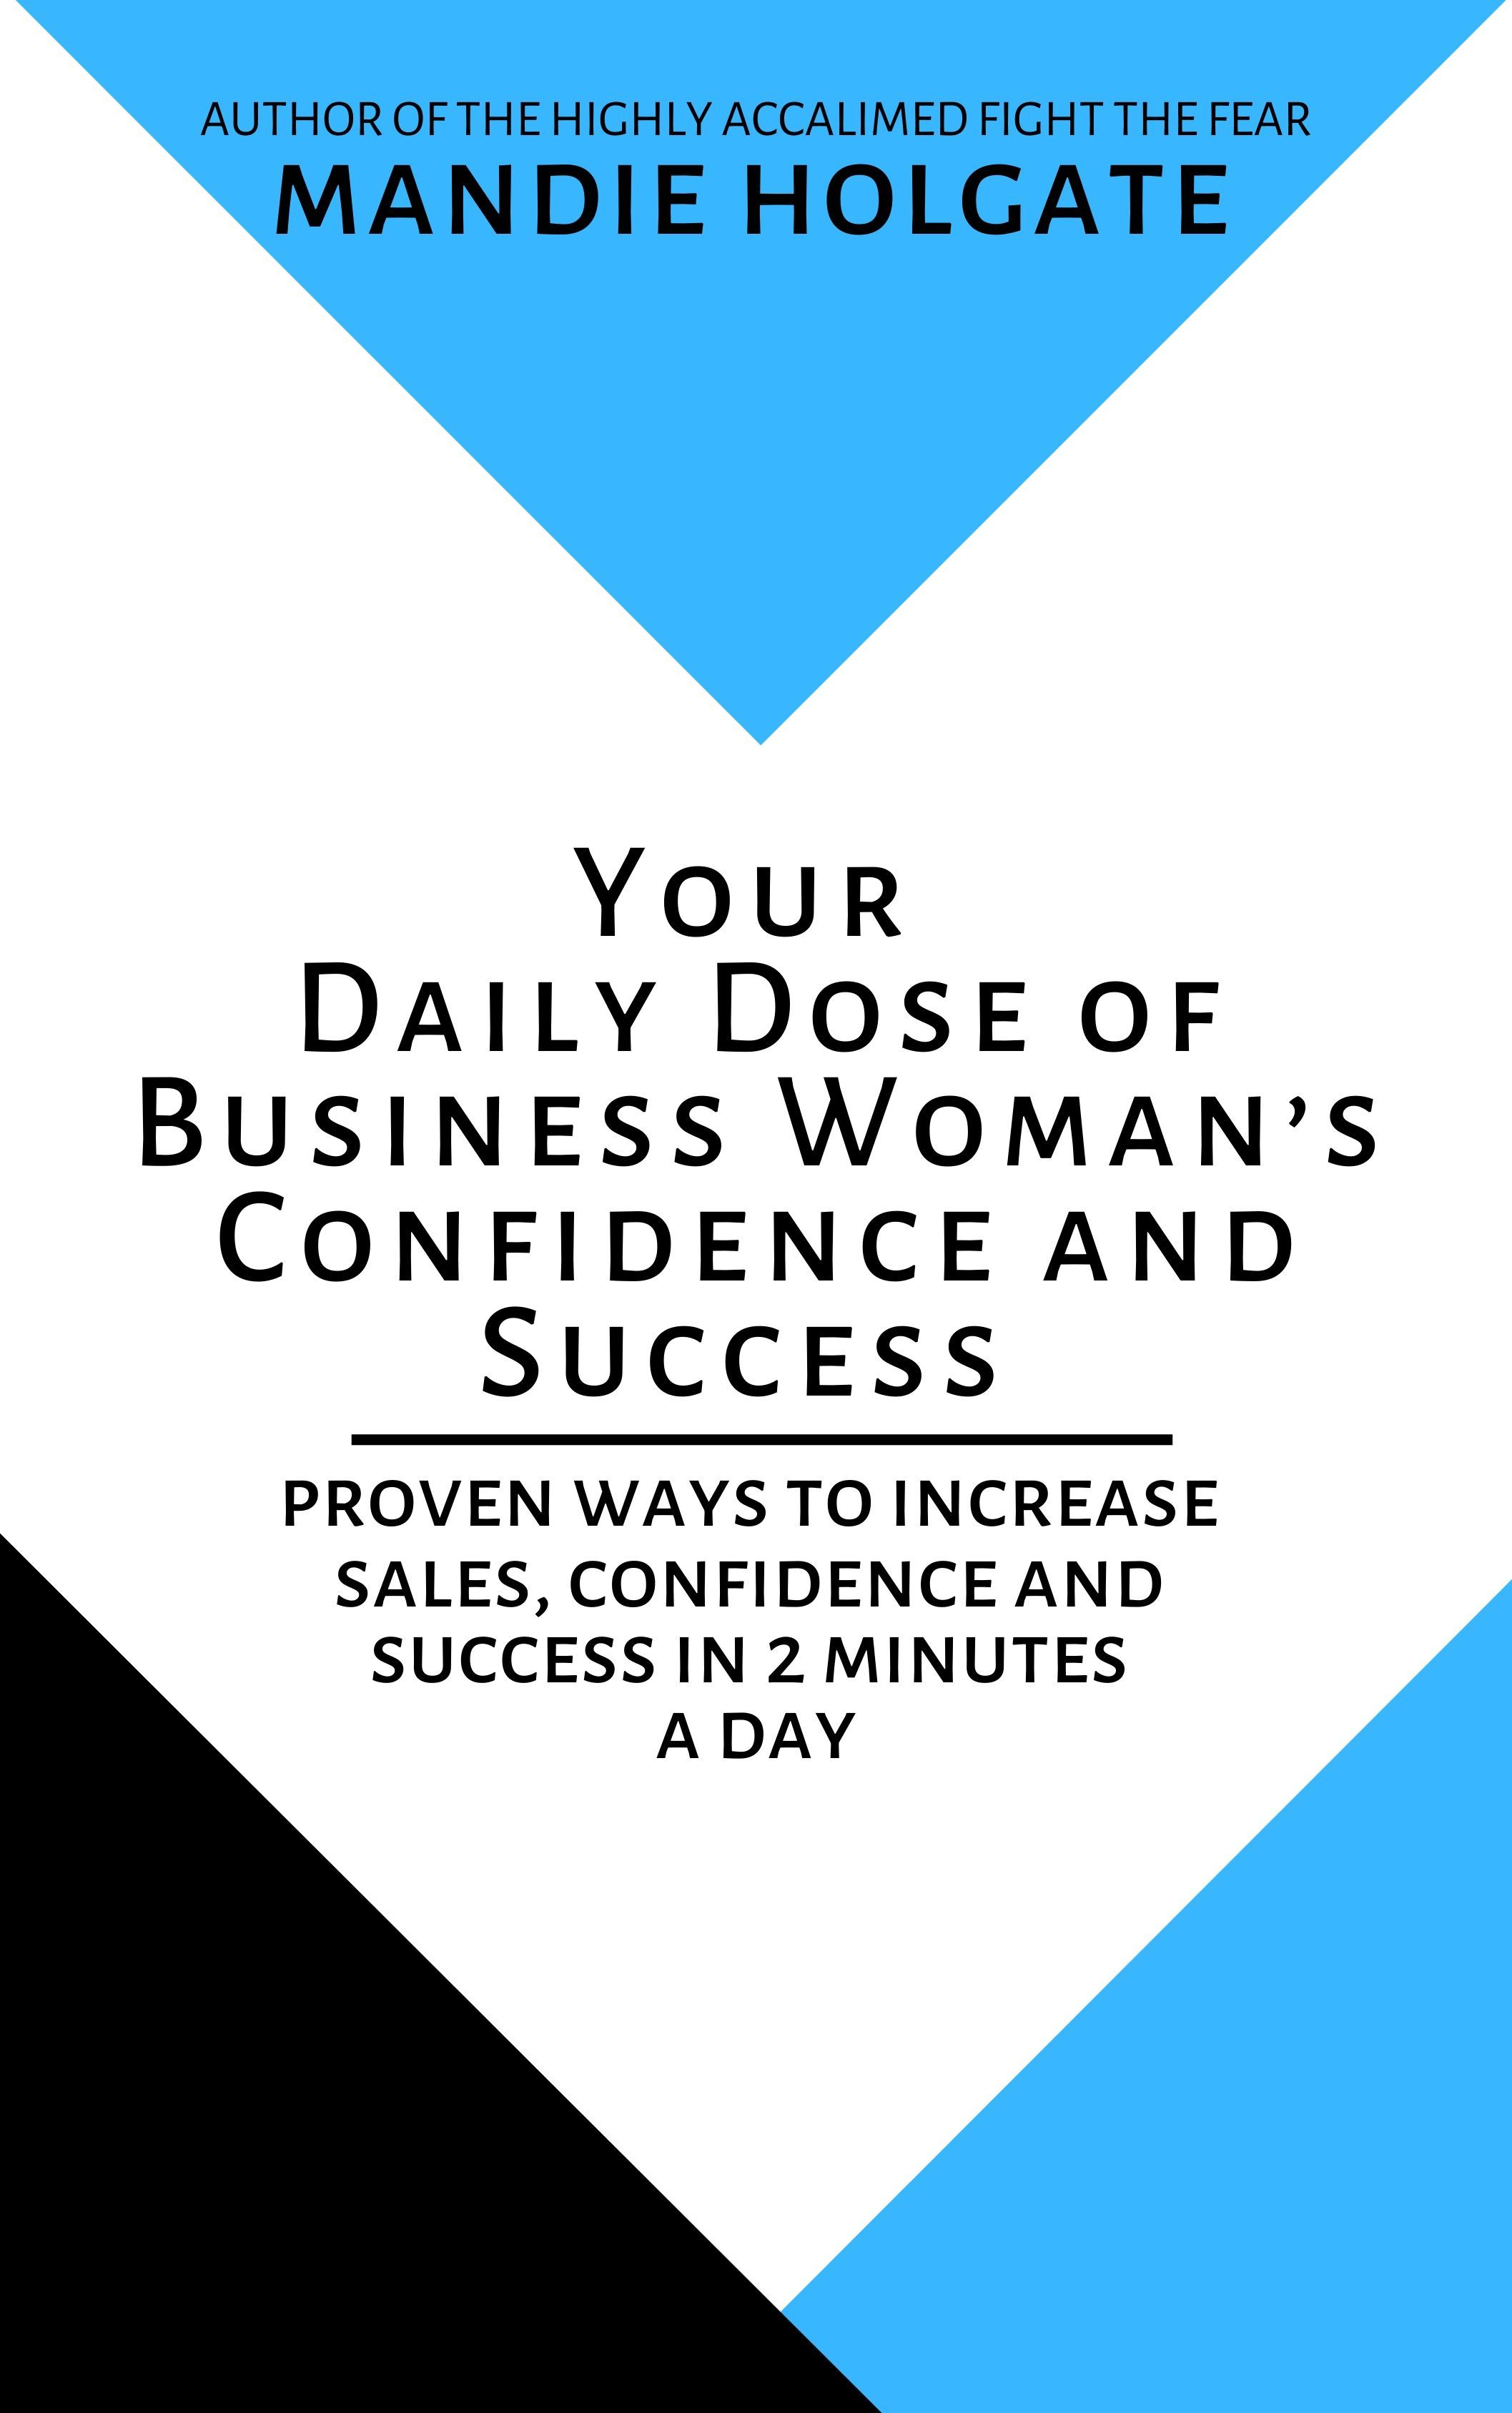 Daily dose of business womans confidence and success